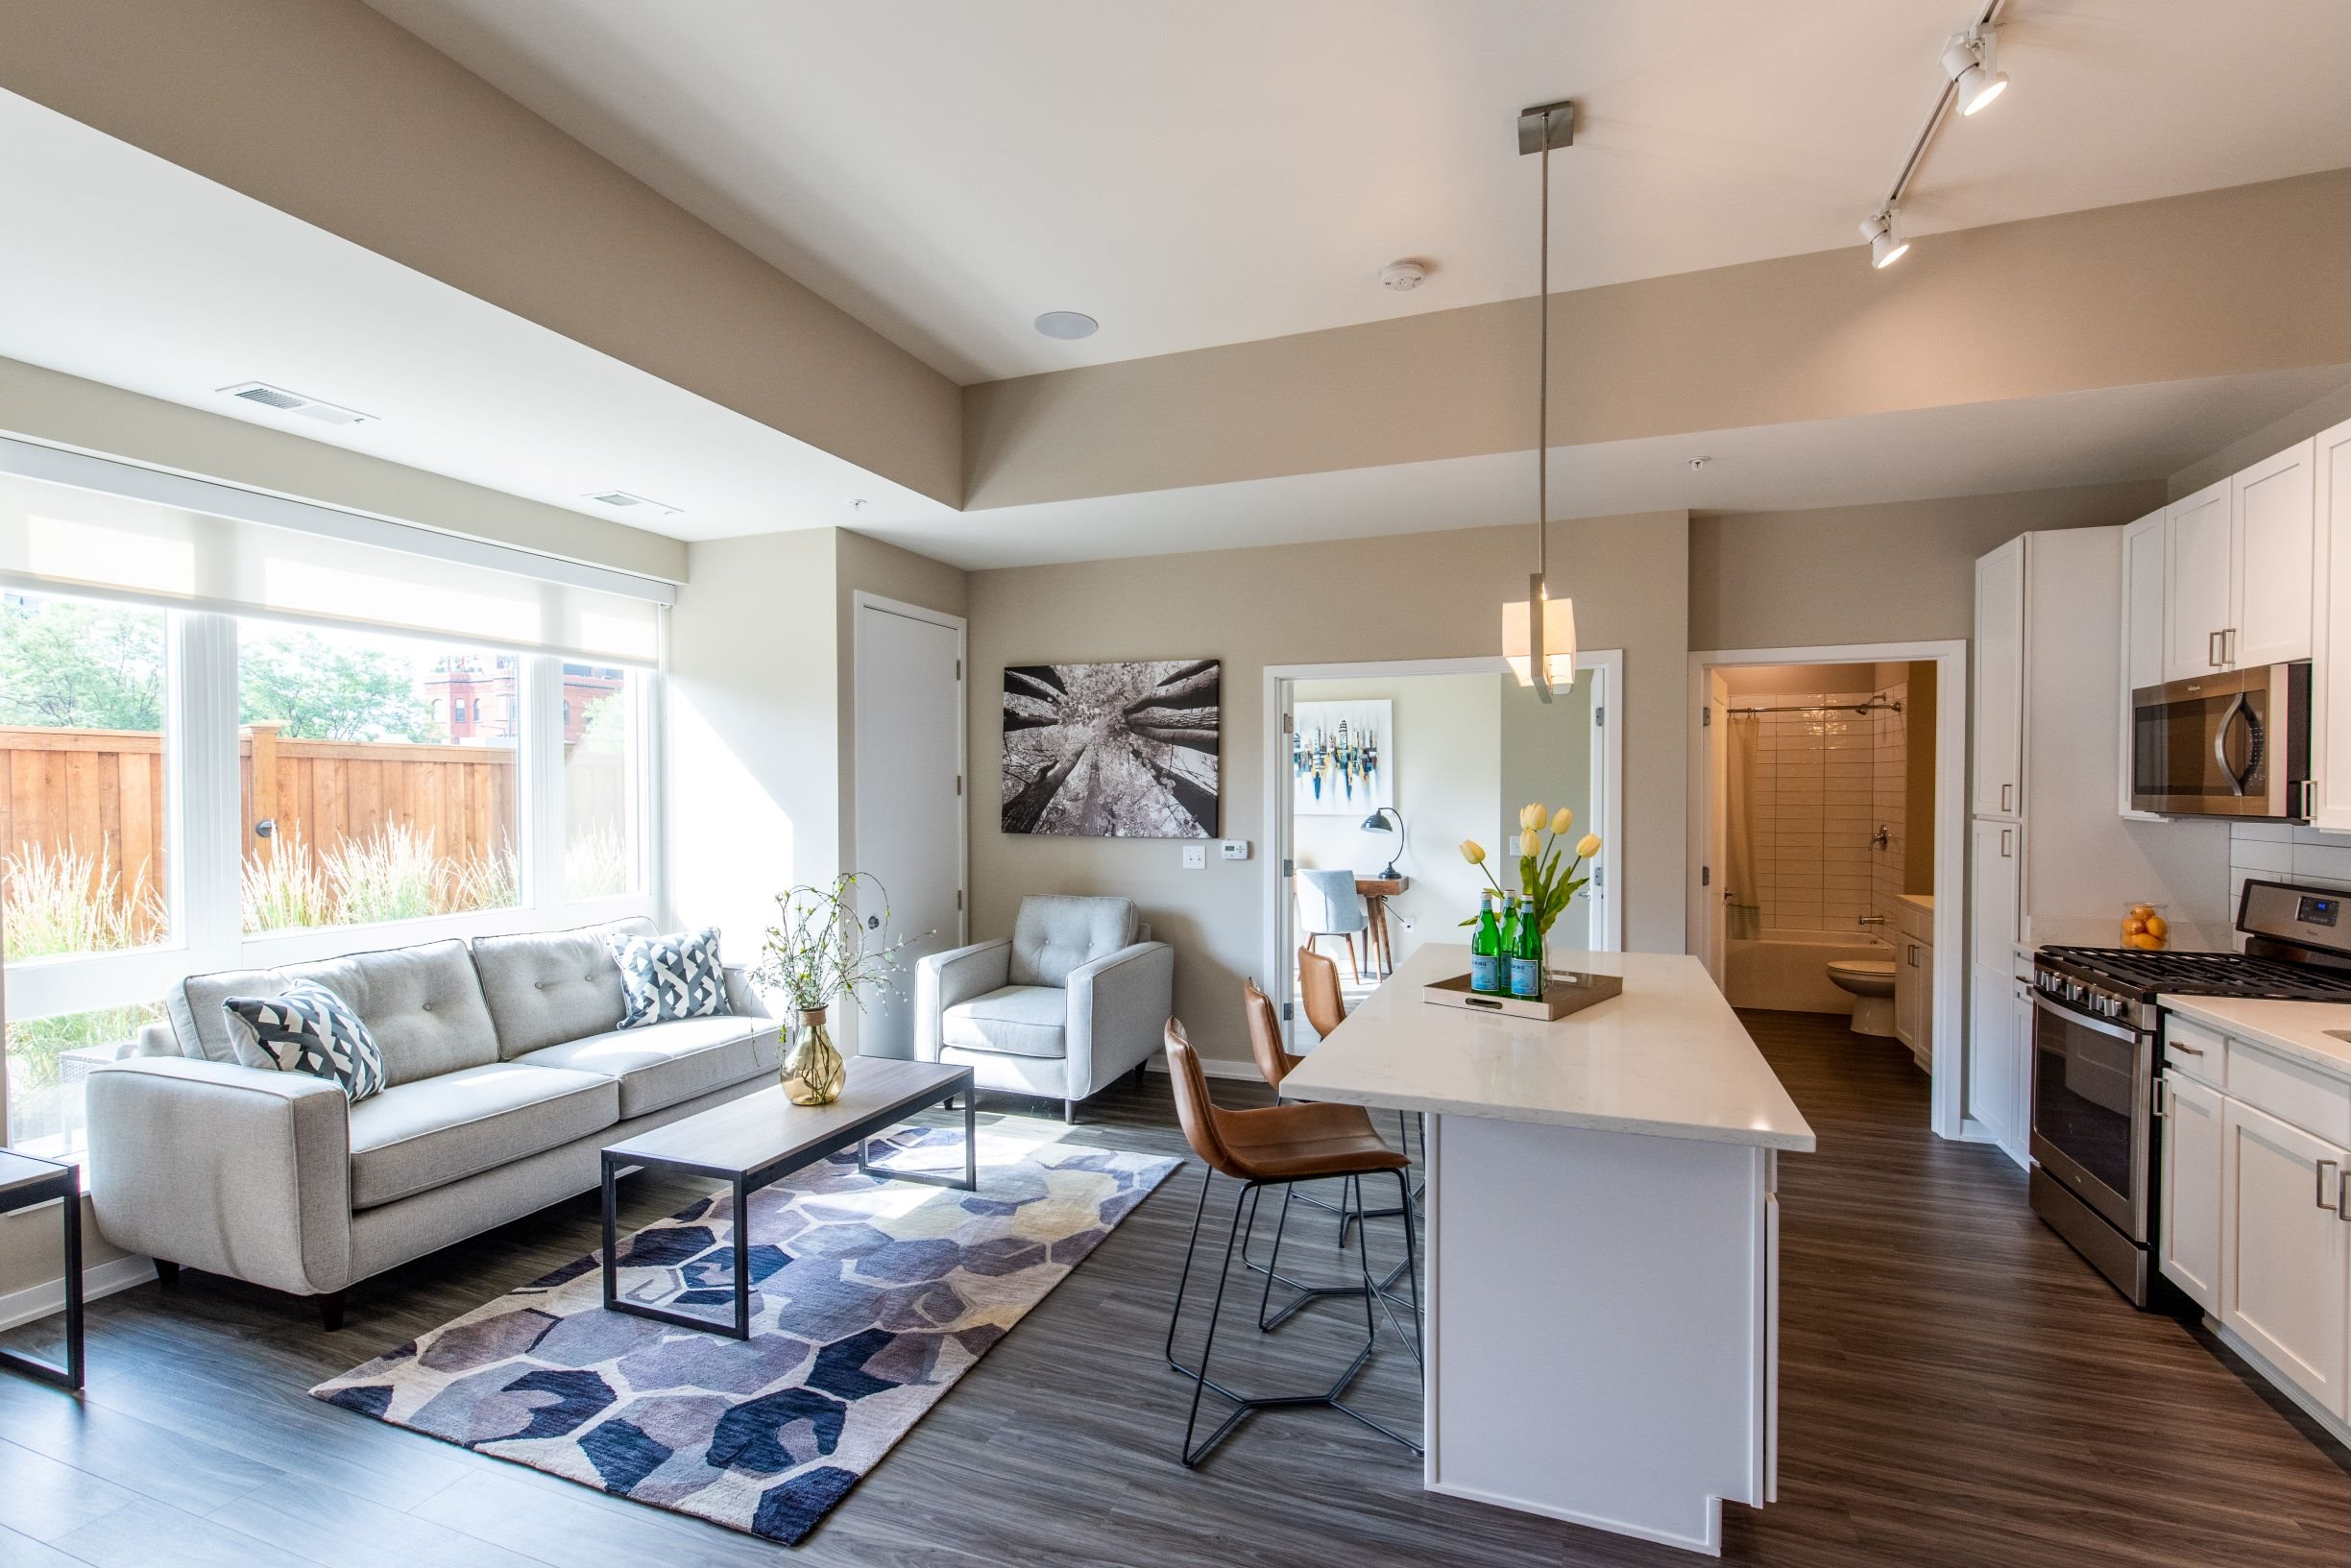 Spacious living room and kitchen with natural lighting